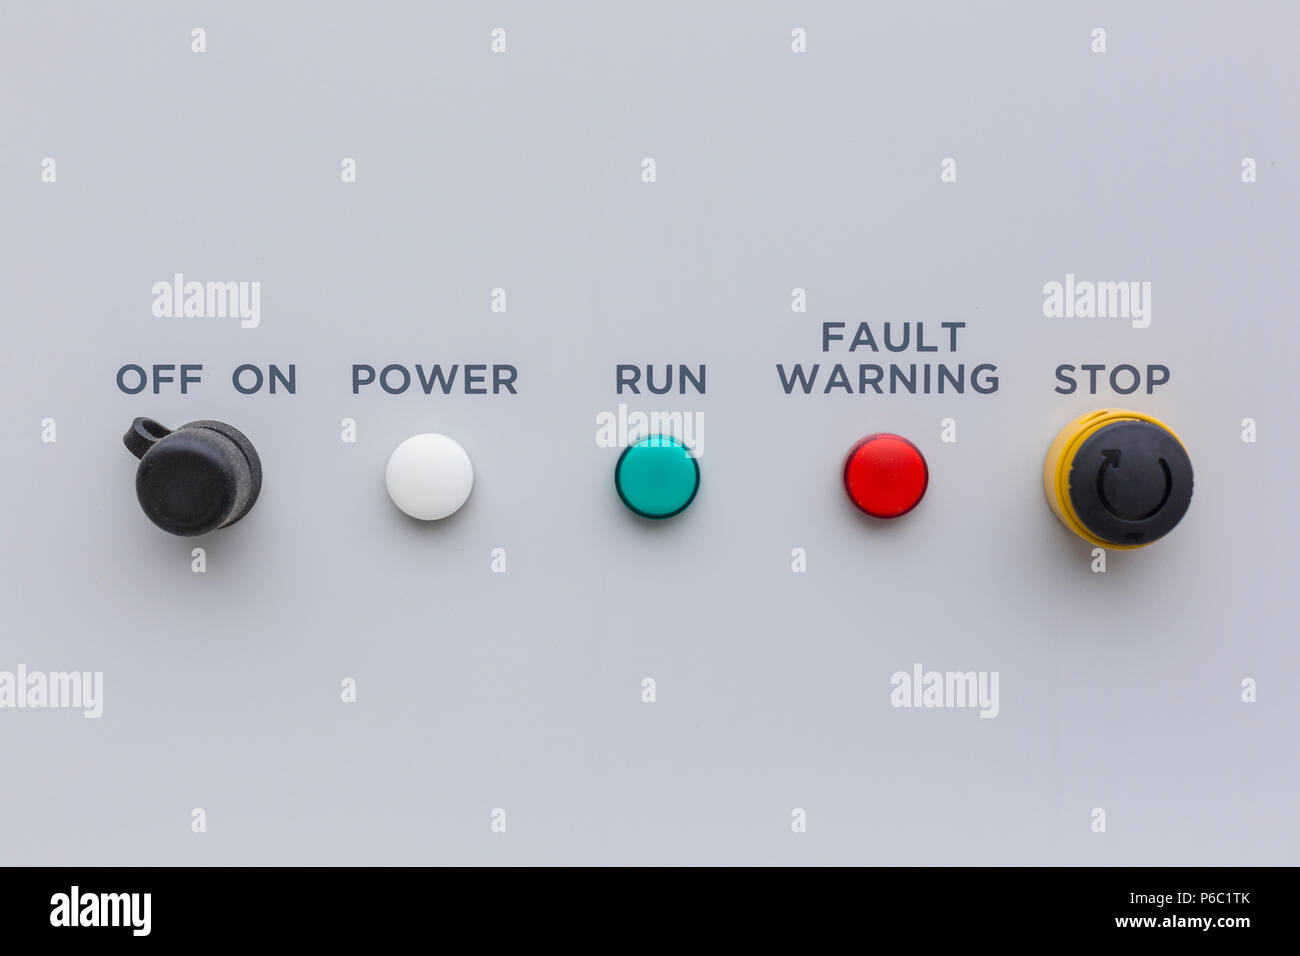 Simple control panel with indicator lights - Stock Image